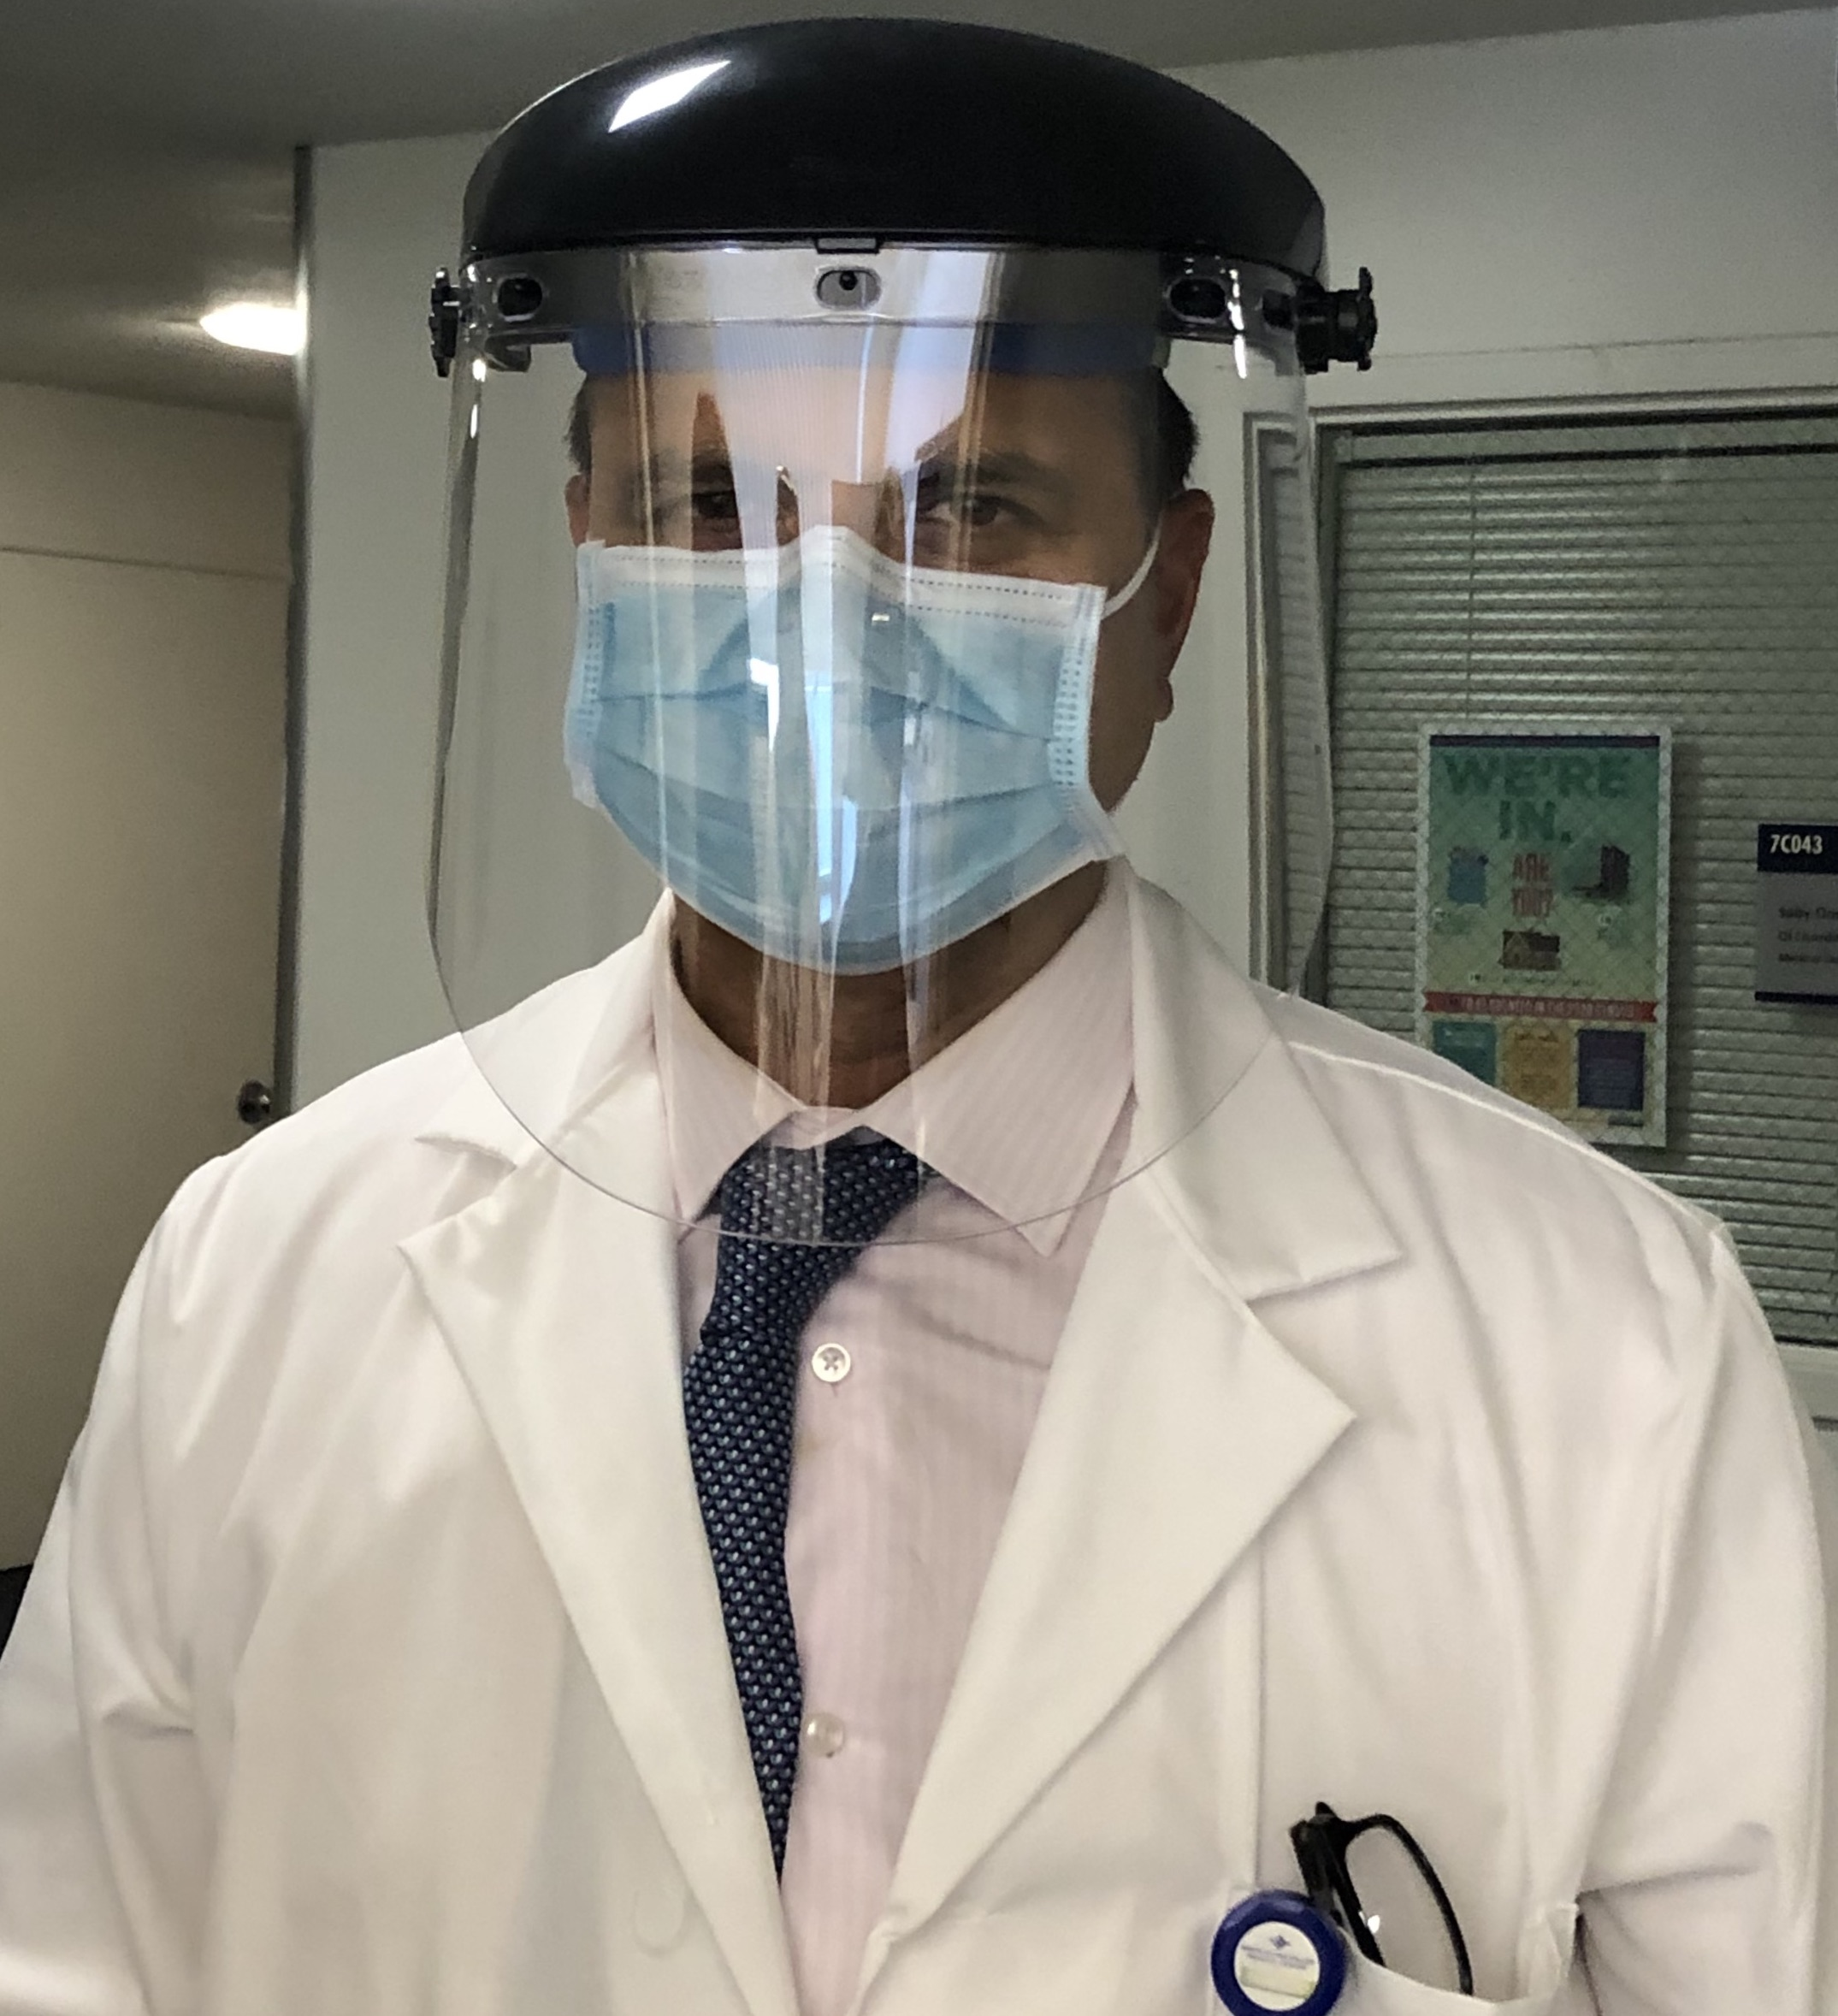 Dr. Sanjay Kurani, hospital medical director at the Santa Clara Valley Medical Center, models a plastic face shield worn over a surgical mask.